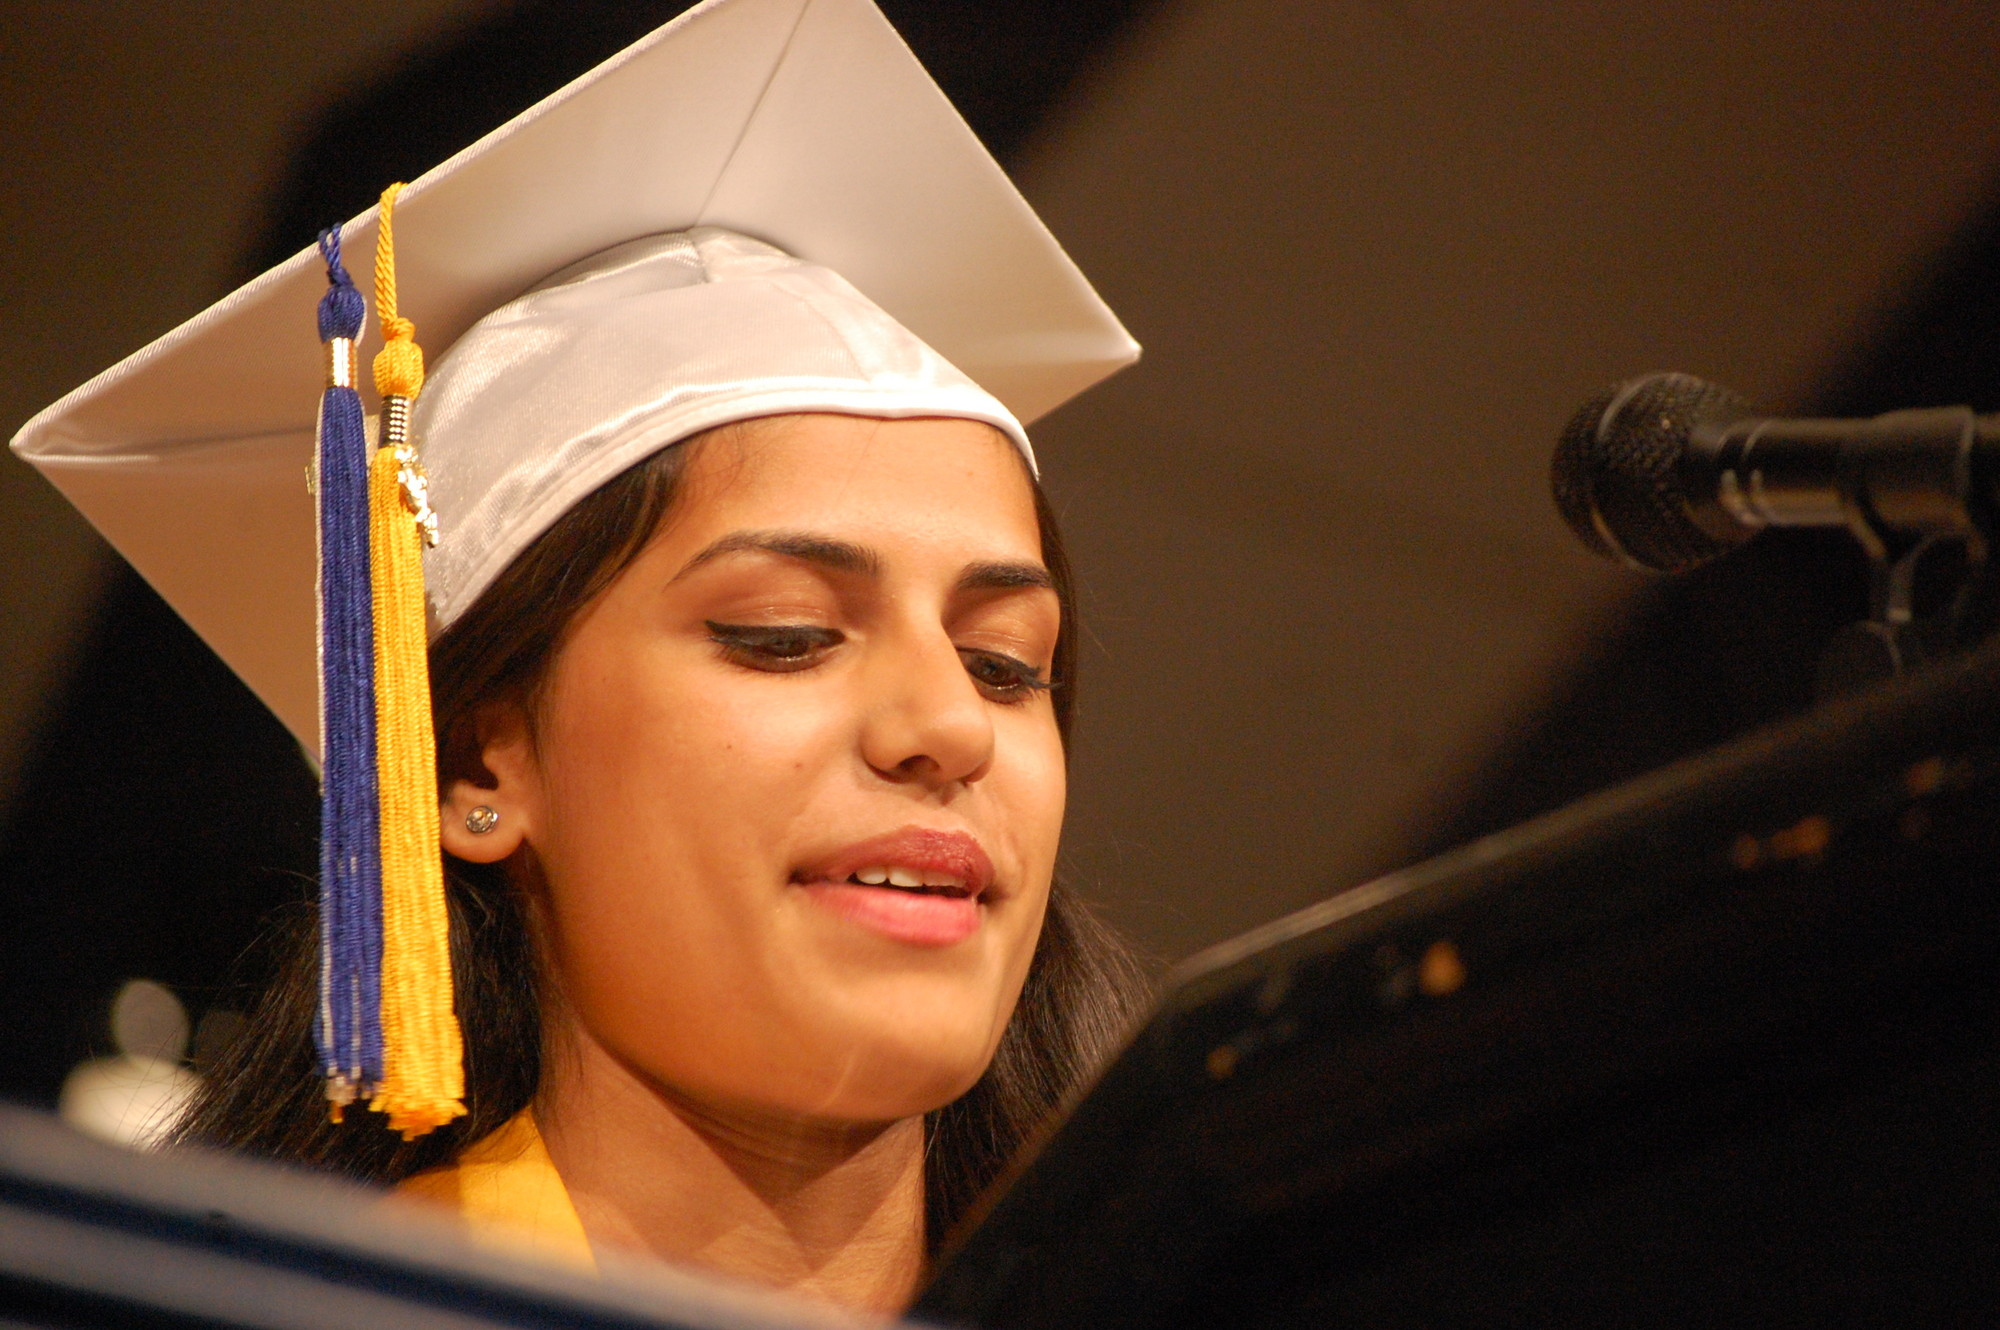 Class President Dipiki Walia said senior year came with many unexpected adventures.